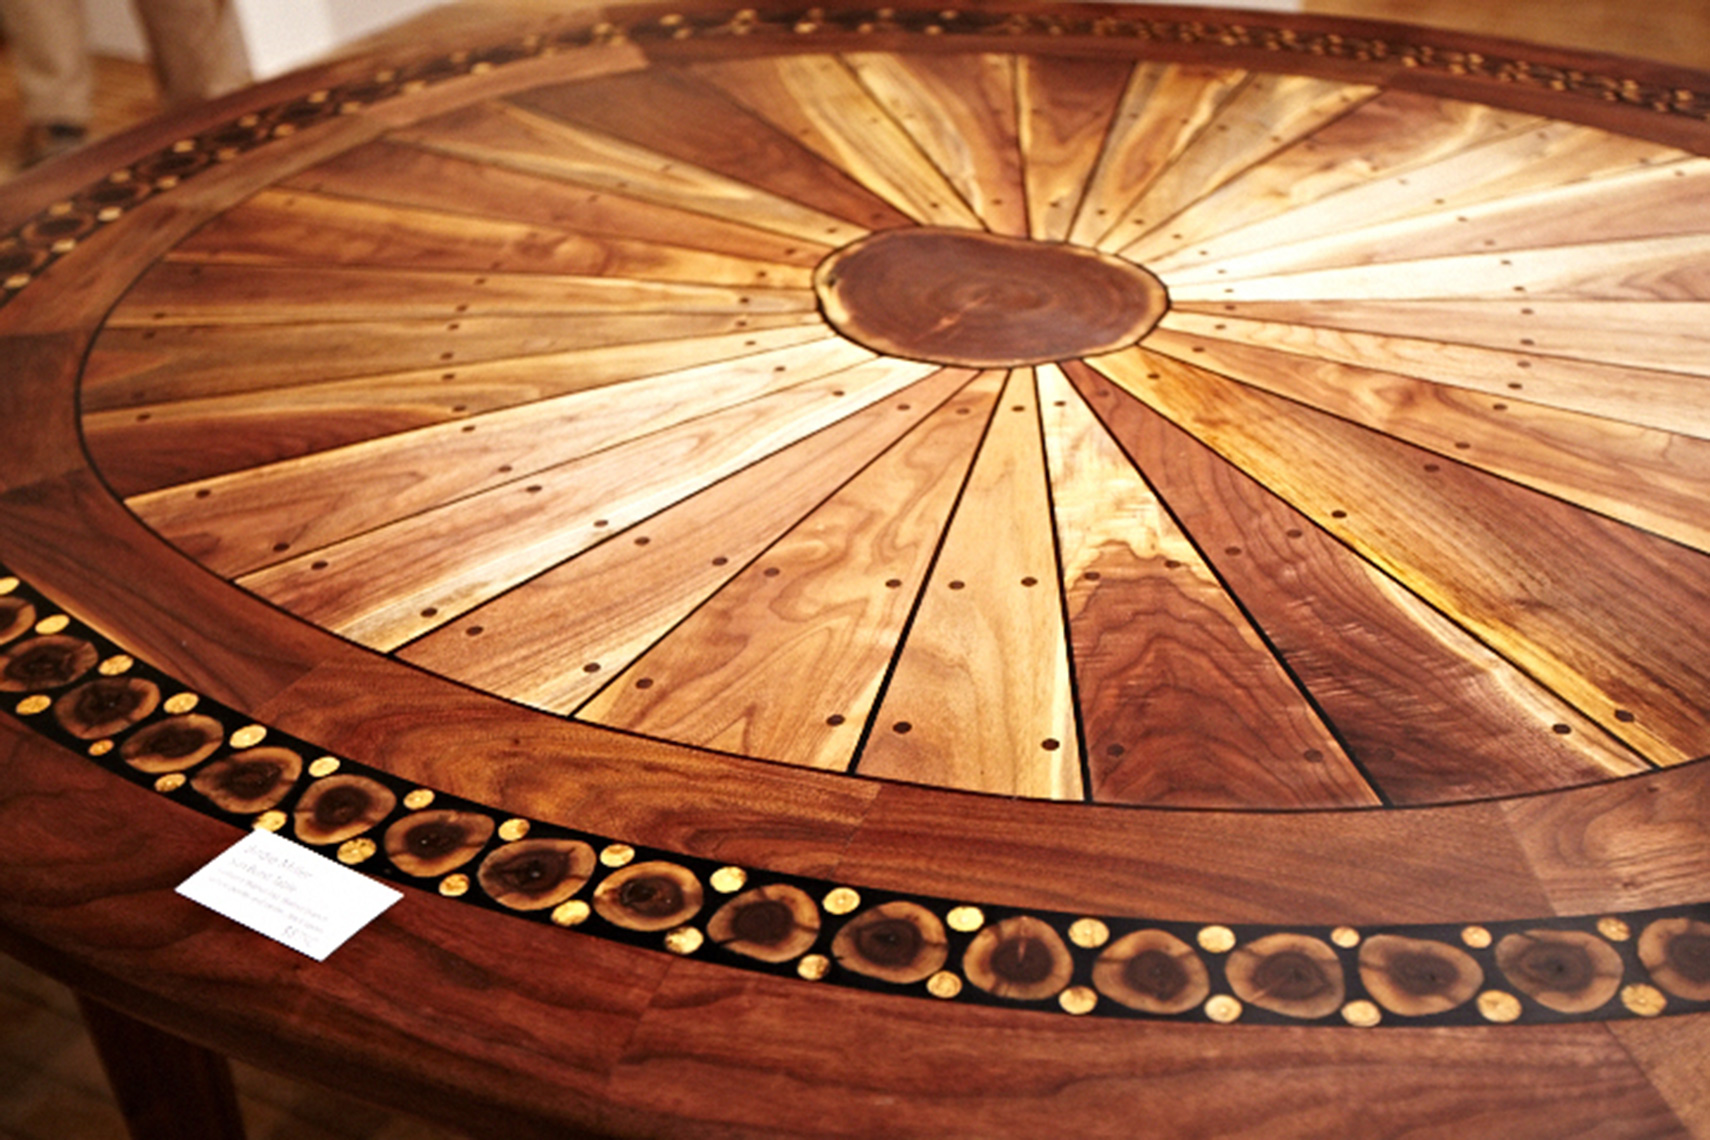 Artistic walnut sunburst table contemporay, crafts style, rustic 2